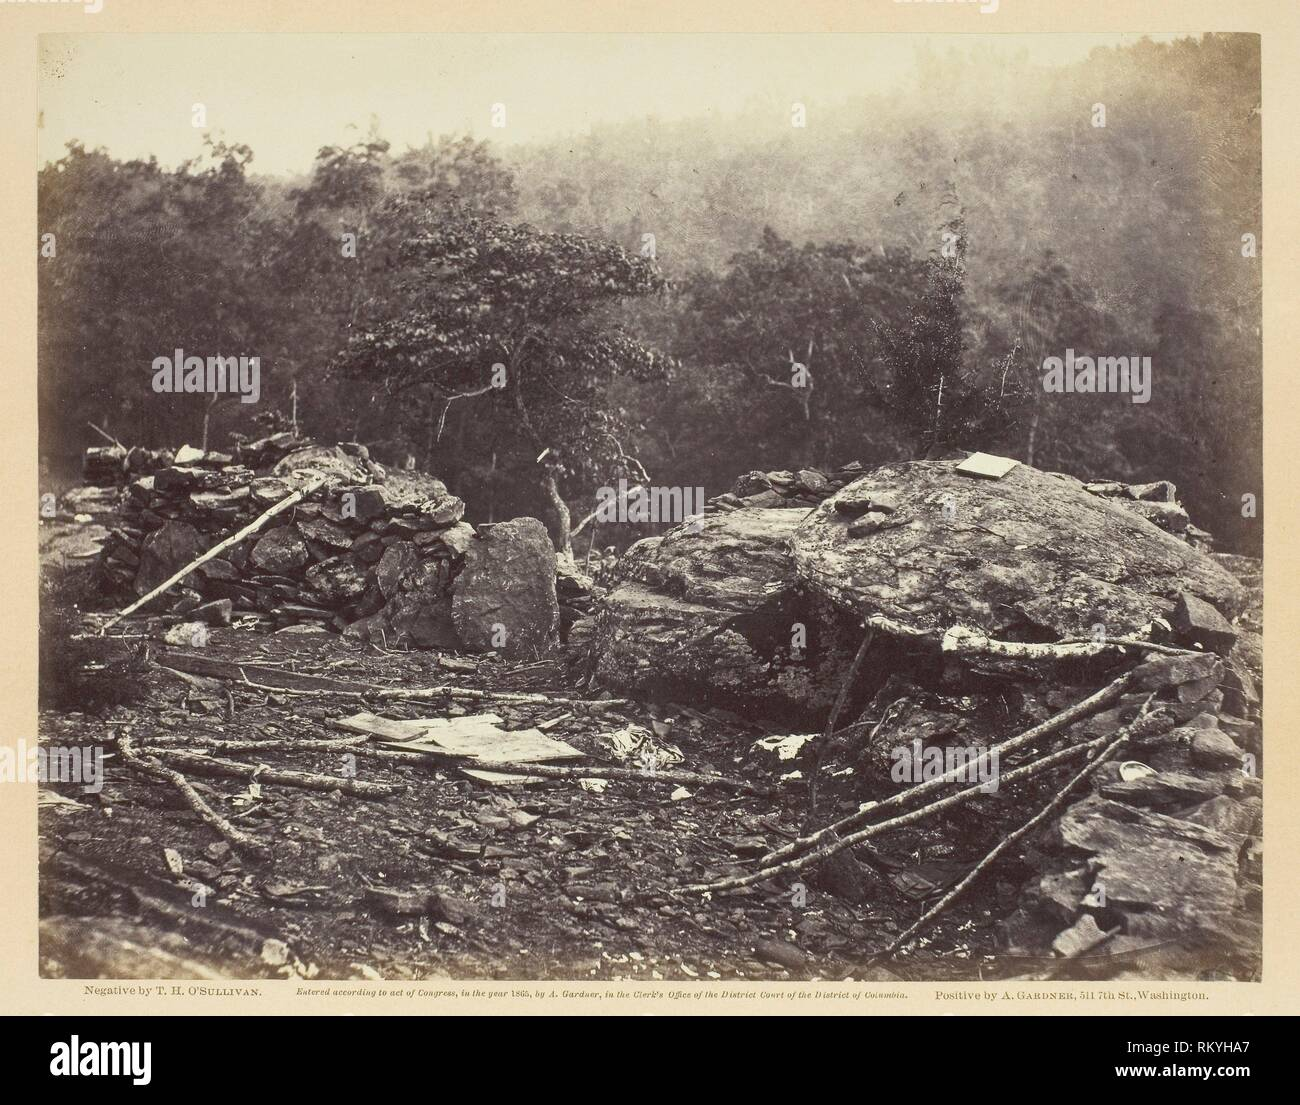 Interior of Breastworks on Round Top, Gettysburg - July 1863 - Timothy O'Sullivan American, born Ireland, 1840–1882 - Artist: Timothy O'Sullivan, - Stock Image